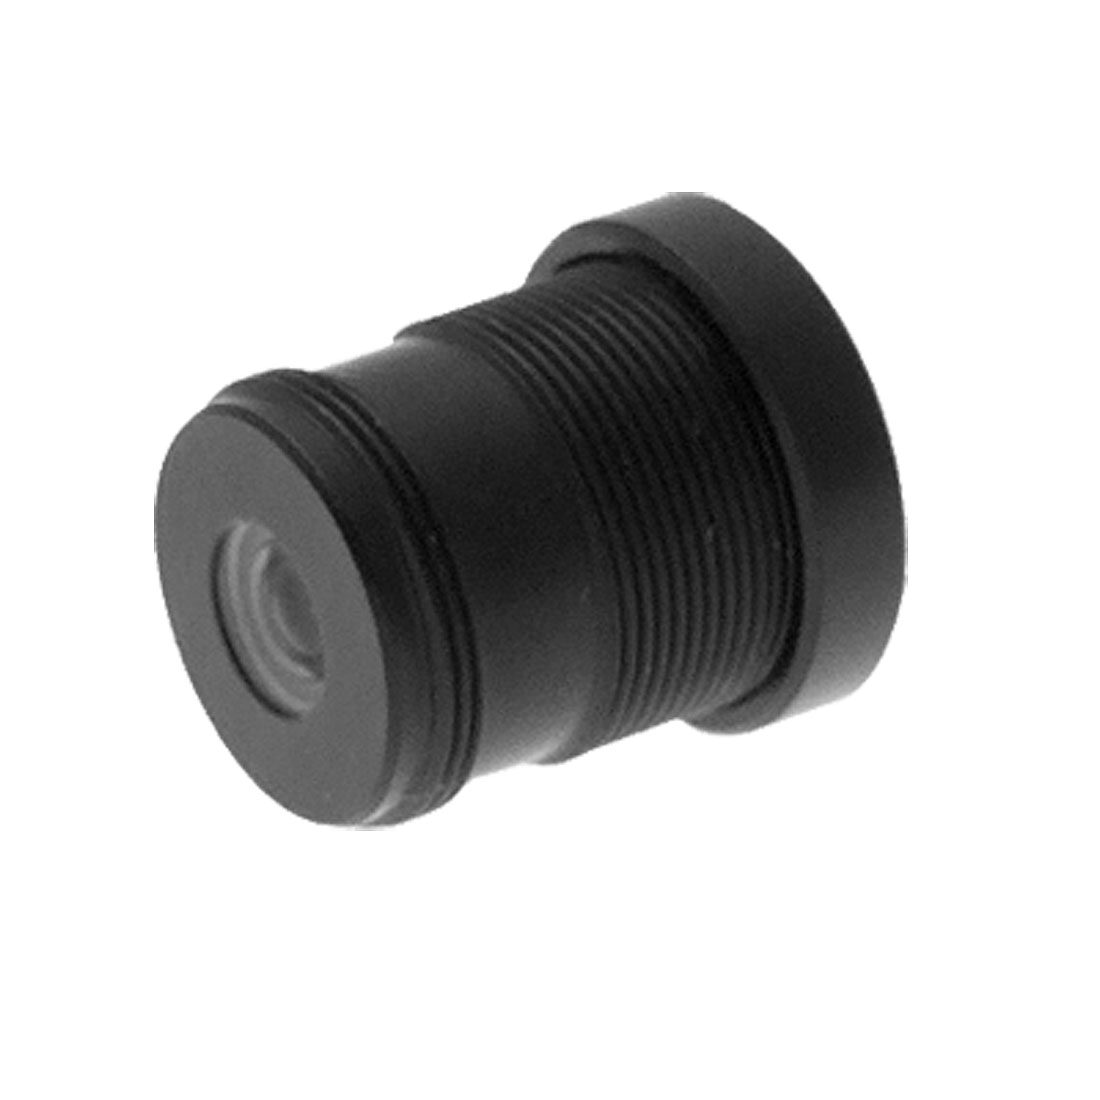 2.6mm Standard Board Security Camera Lens for CCTV Camera 2.6 MM Focal Length